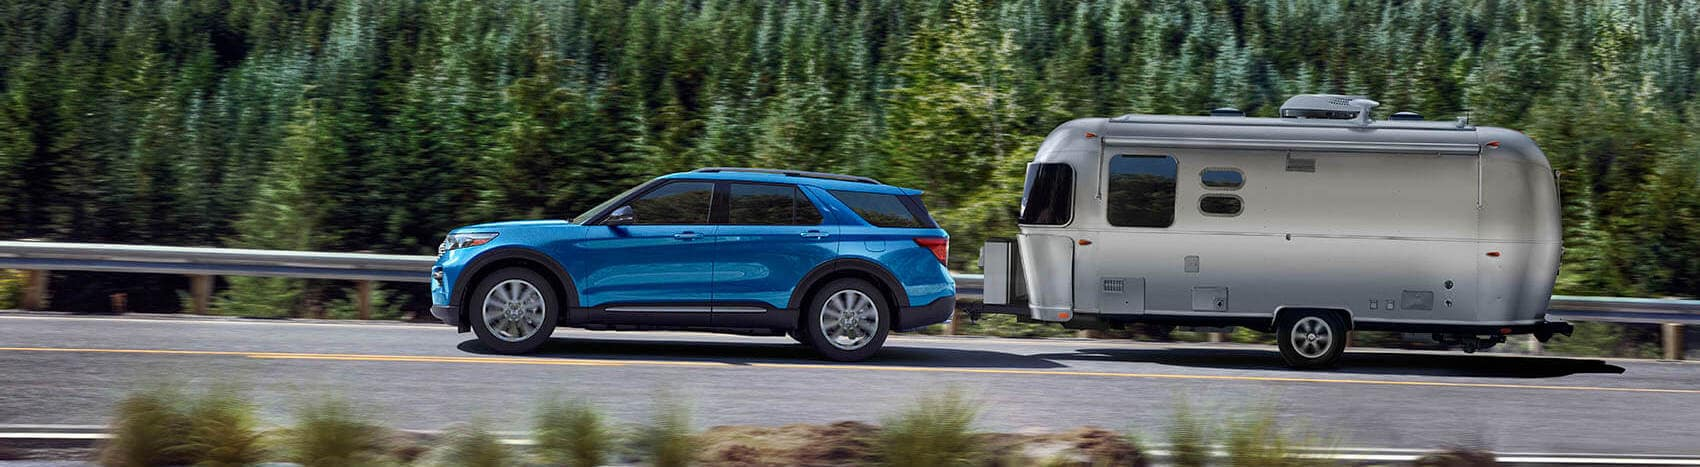 Ford Explorer Towing